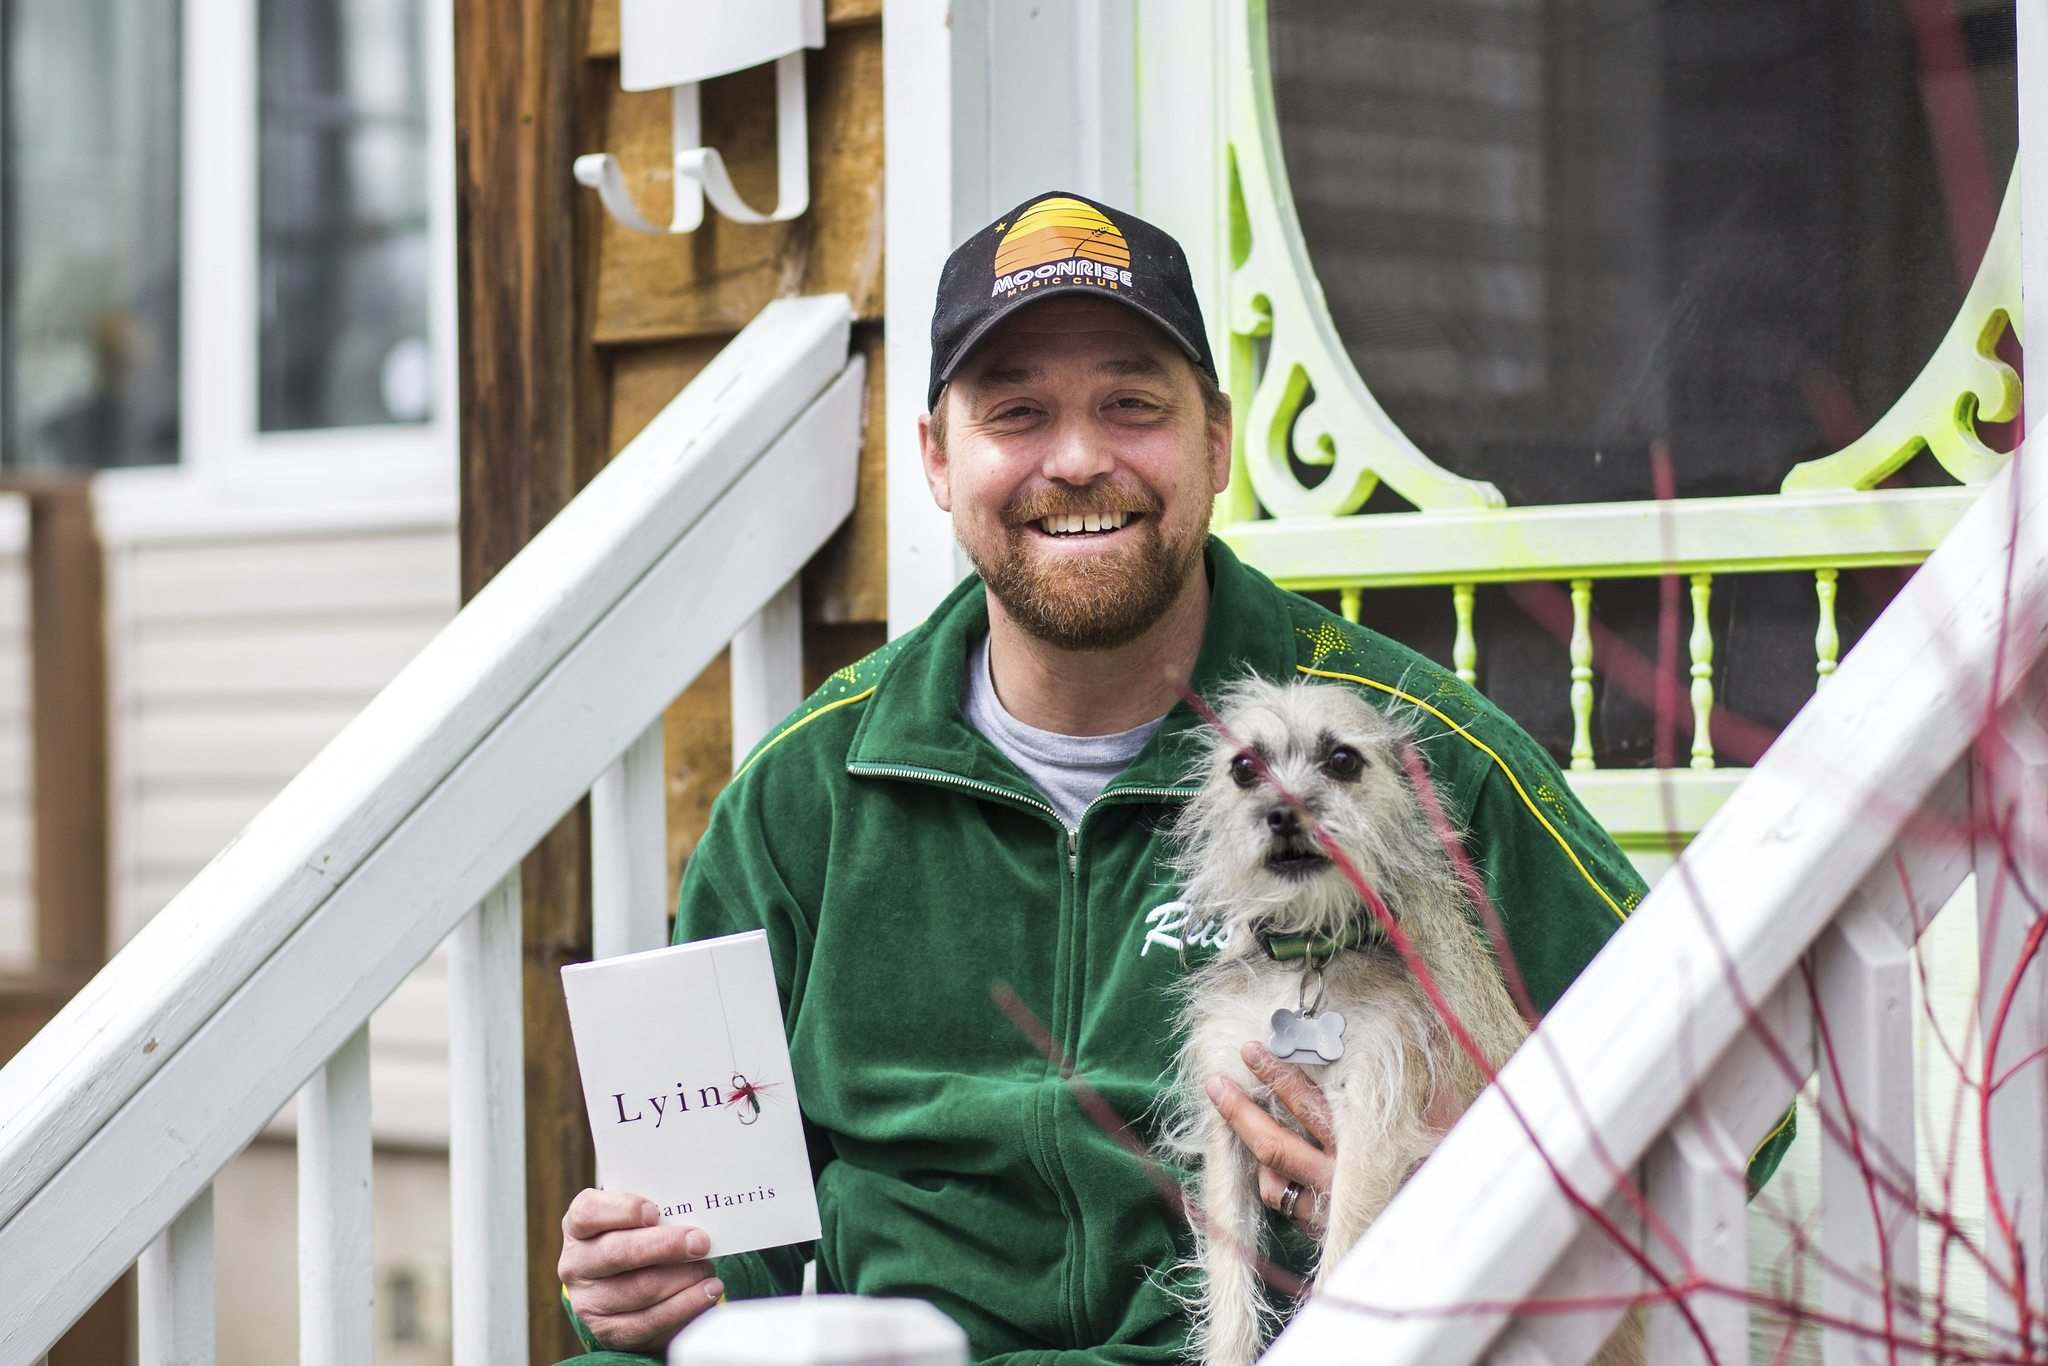 Rusty Matyas is joined by his dog, Leela, and a copy of Lying by Sam Harris — one of the top five things helping him through the pandemic.</p></p>